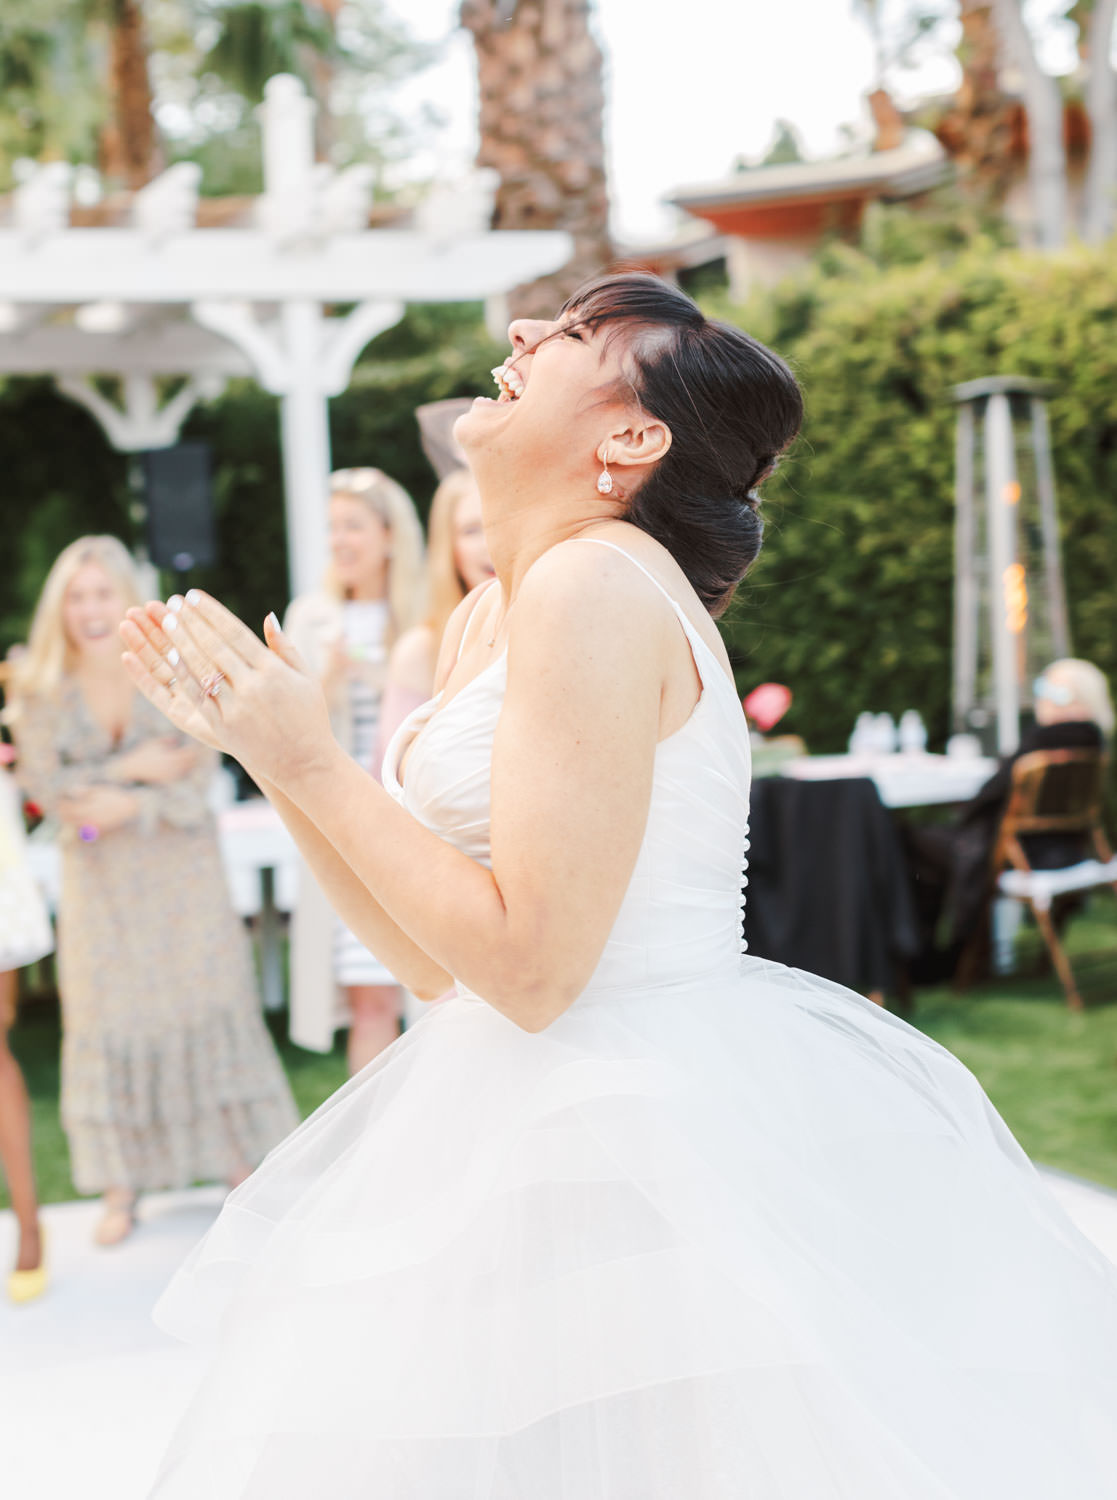 Bride laughing after tossing her bouquet. Riviera Palm Springs Wedding by Cavin Elizabeth Photography